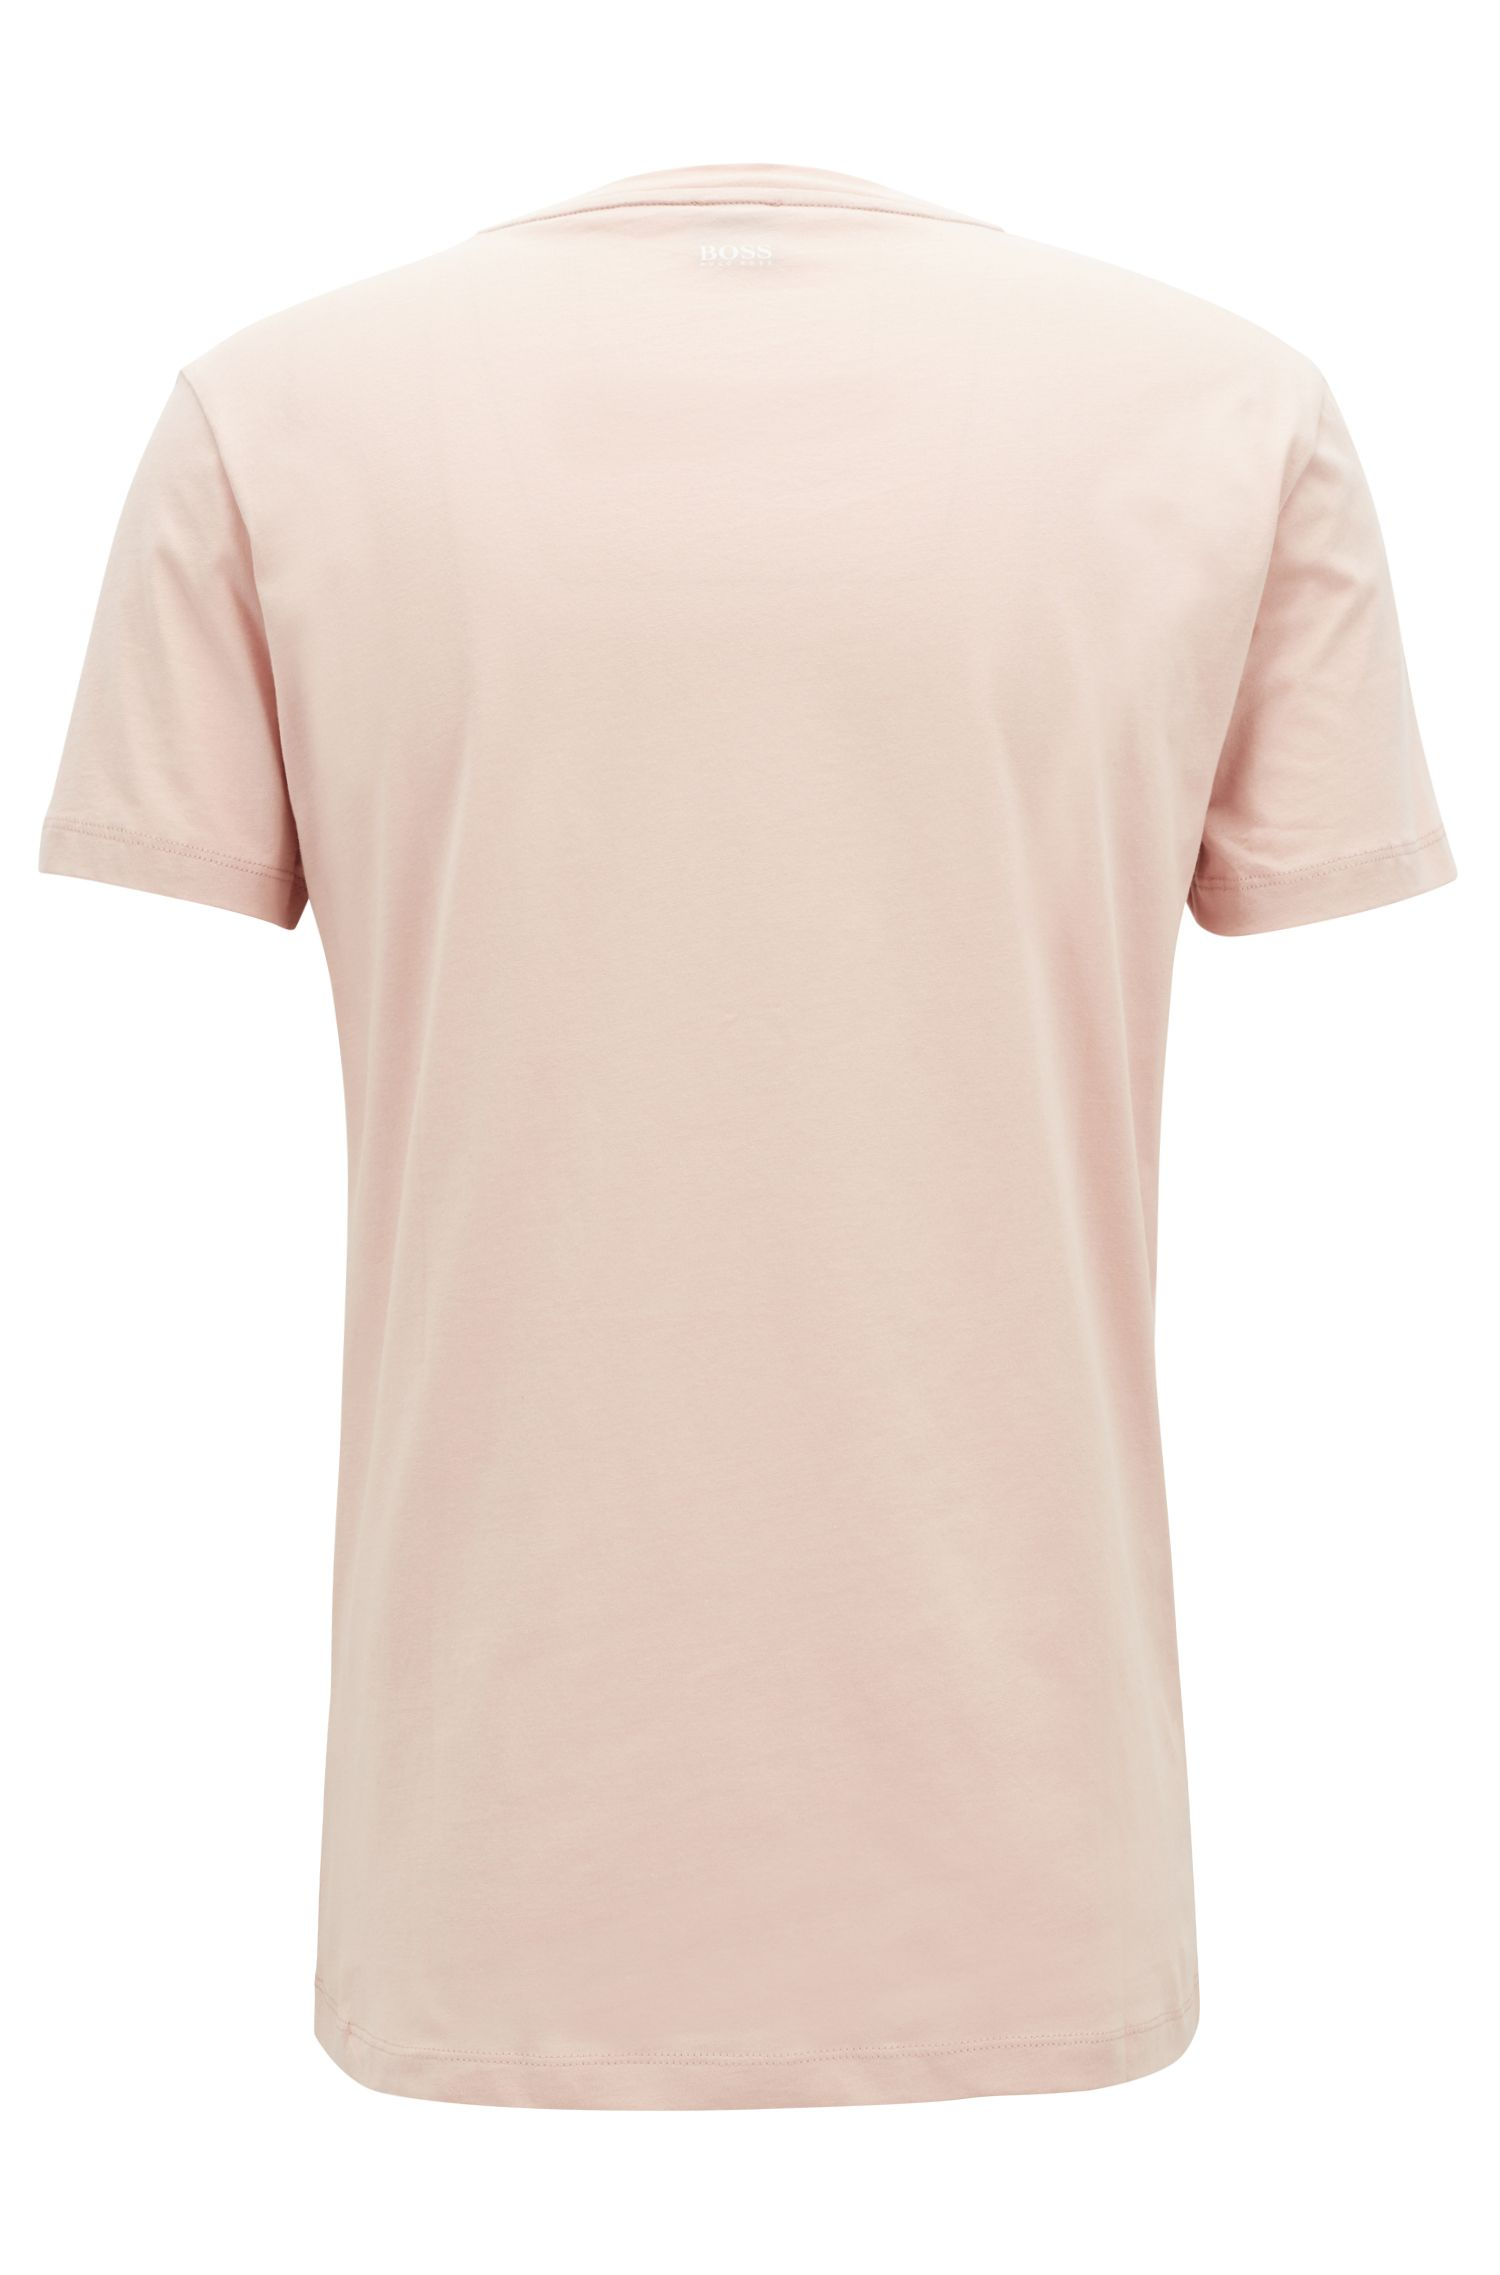 T-shirt graphique Relaxed Fit en jersey simple de coton